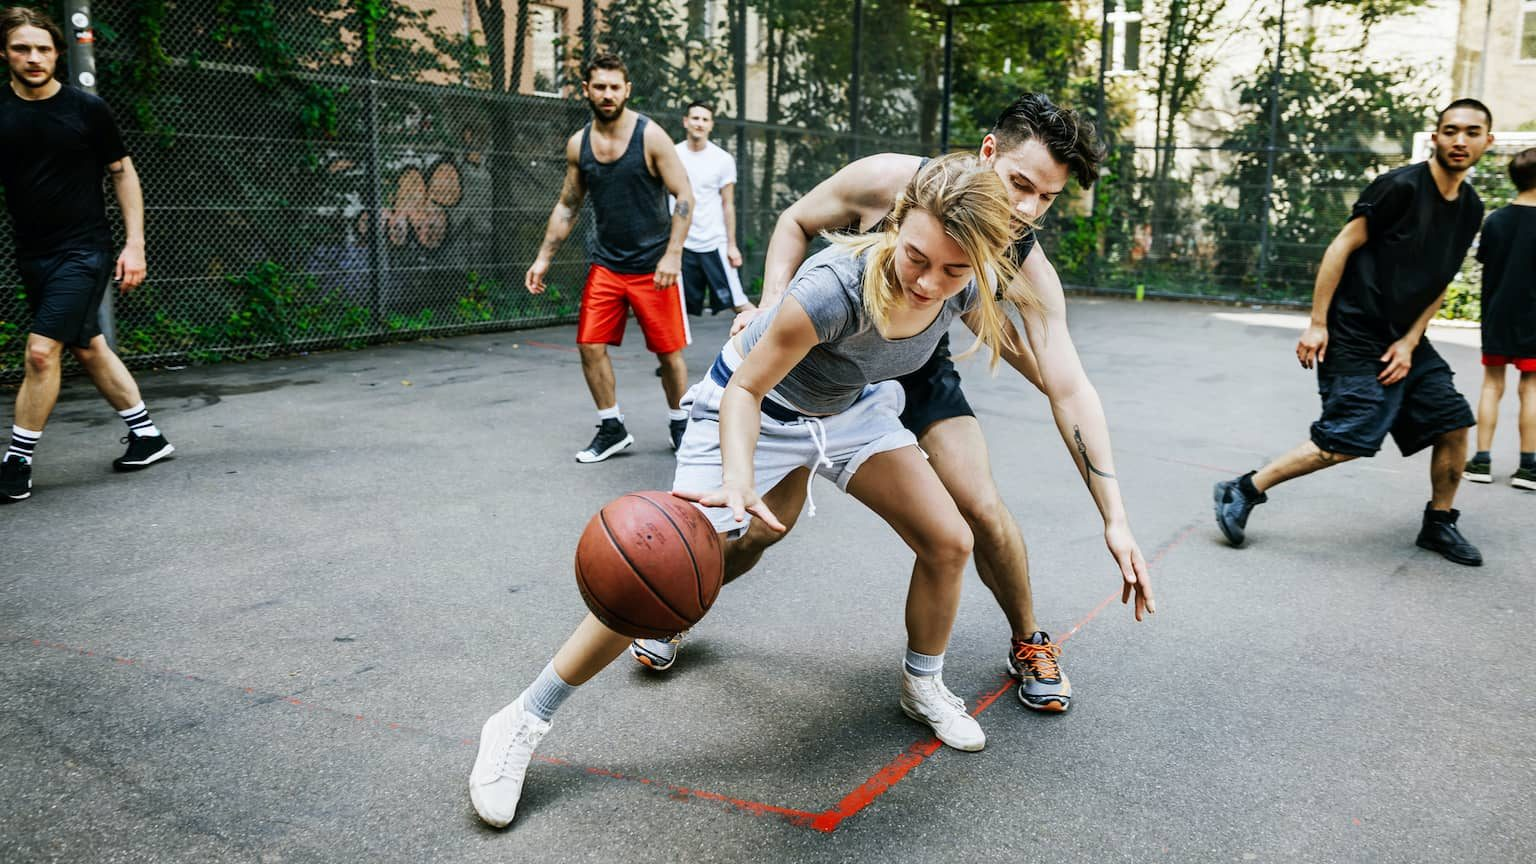 An amateur athlete is skillfully defending her position during a friendly outdoor basketball game in the city.